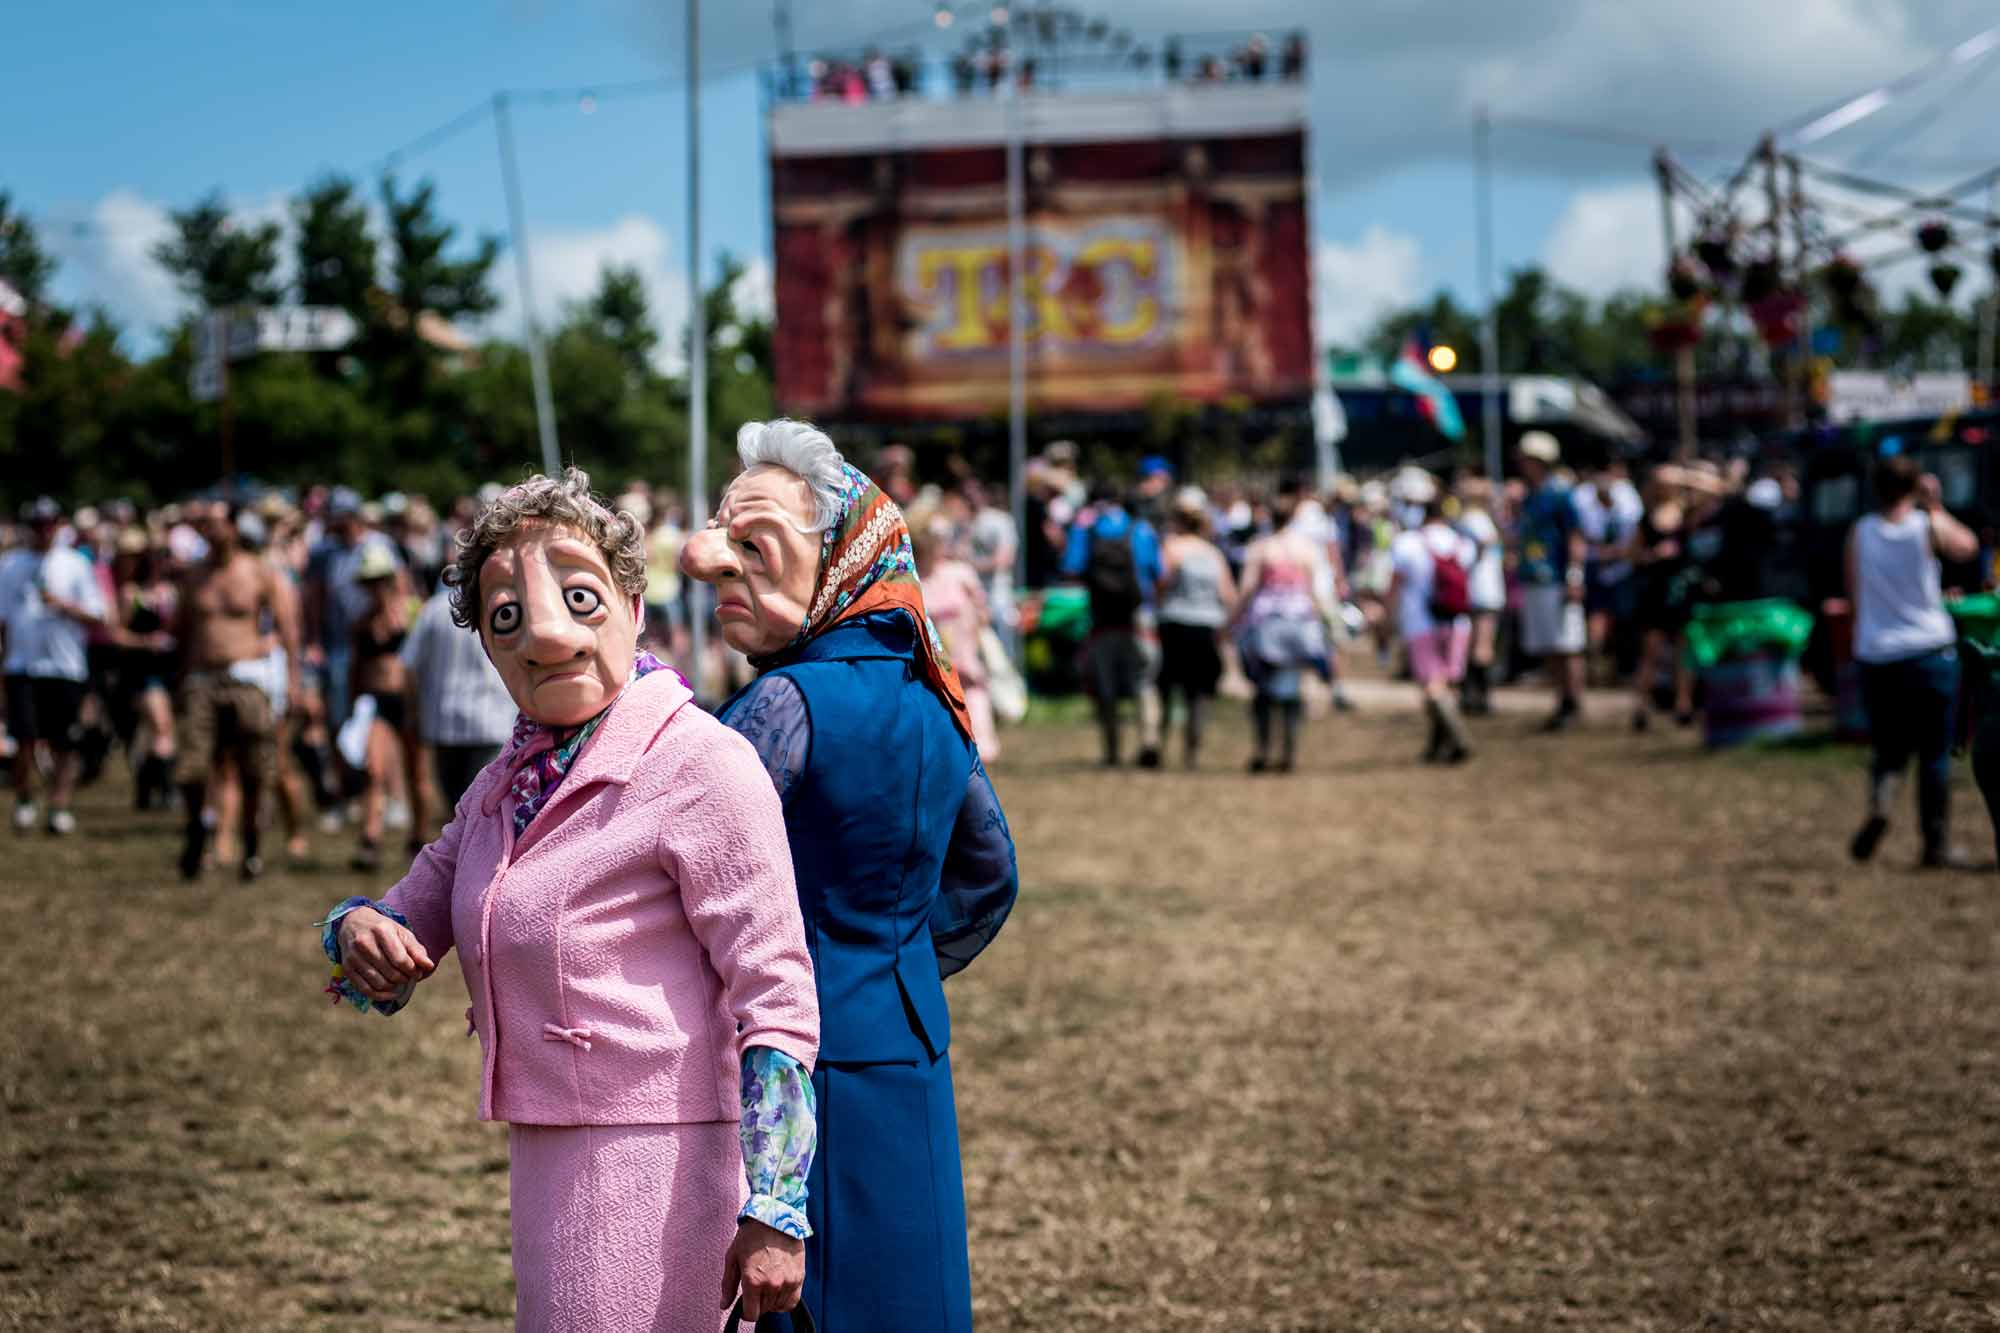 Crimplene Crusaders survey the scene at Glastonbury Festival